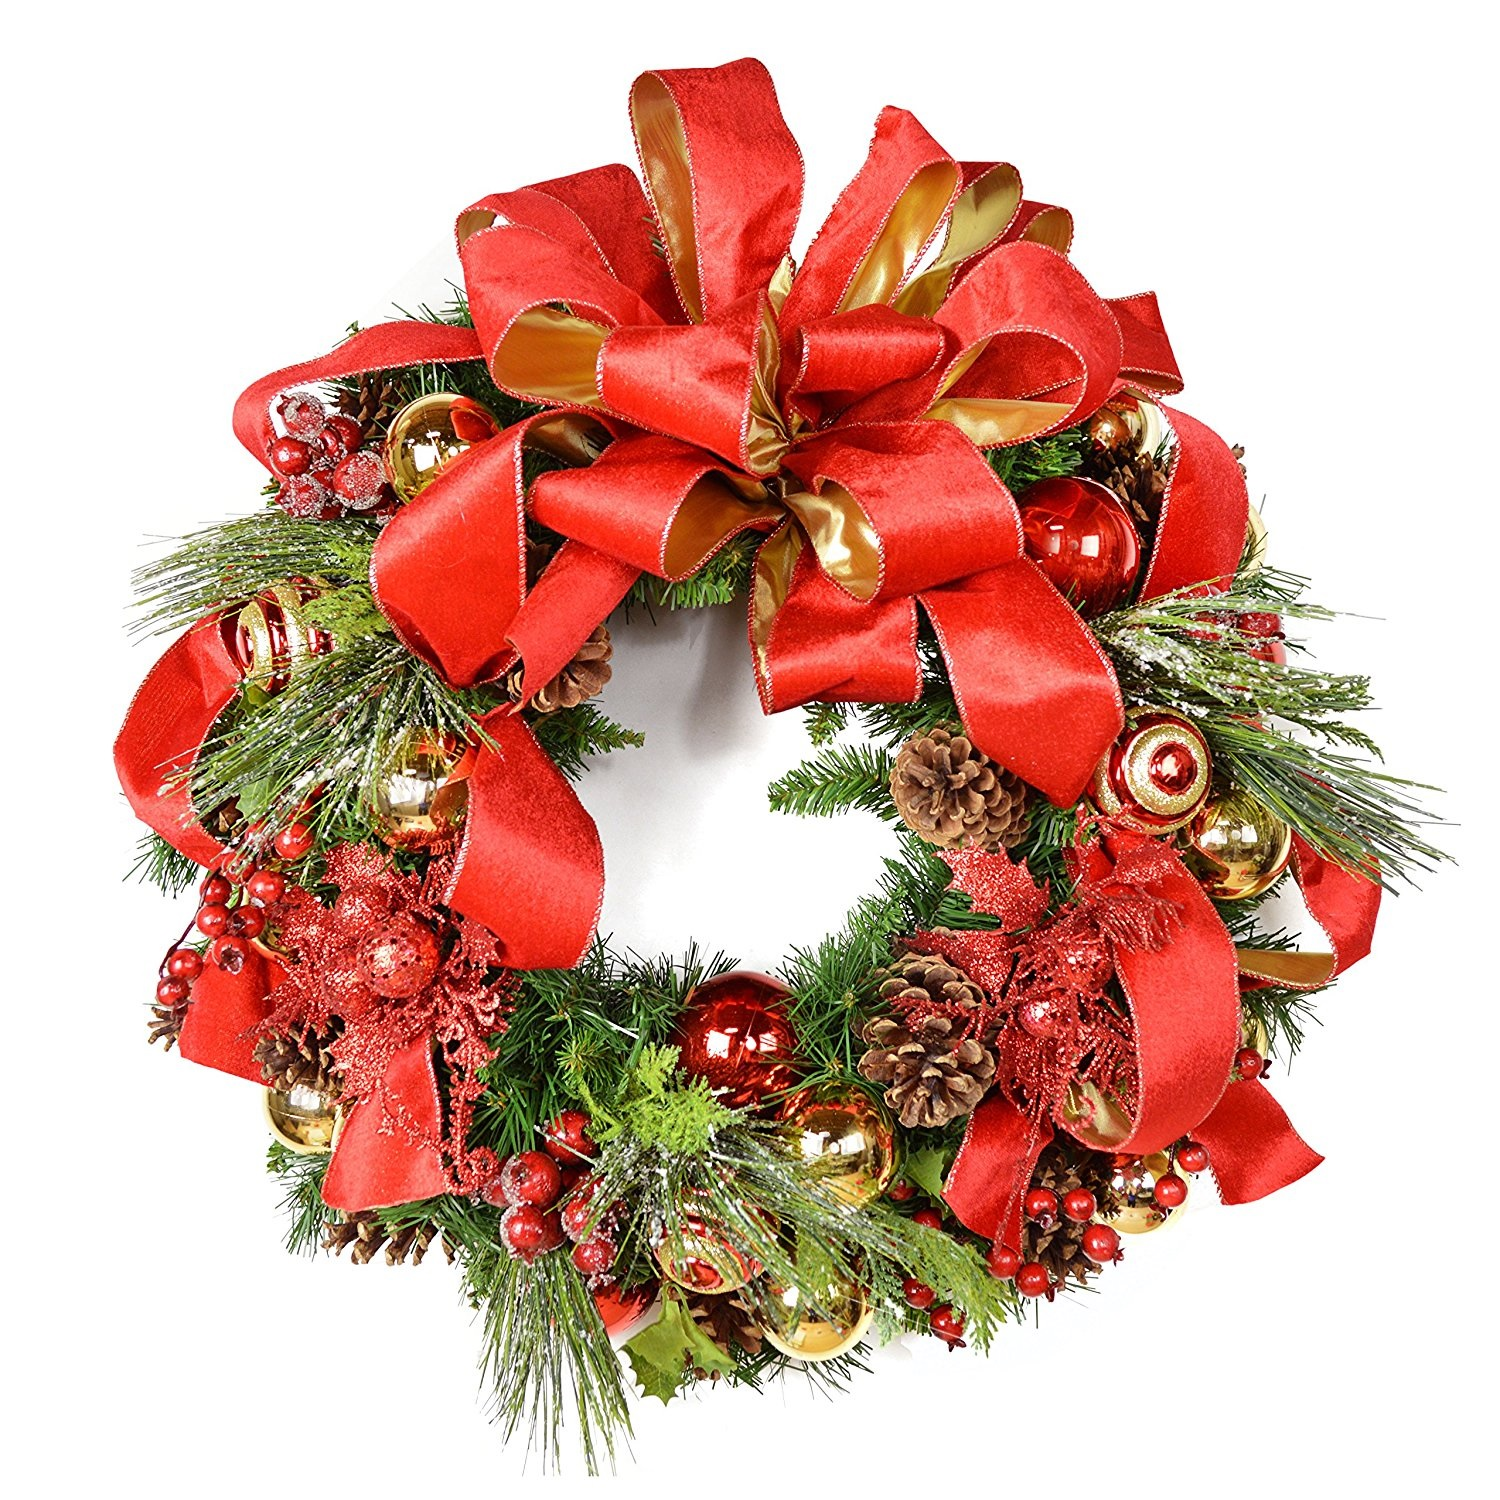 Decorative Christmas Wreaths for the Front Door